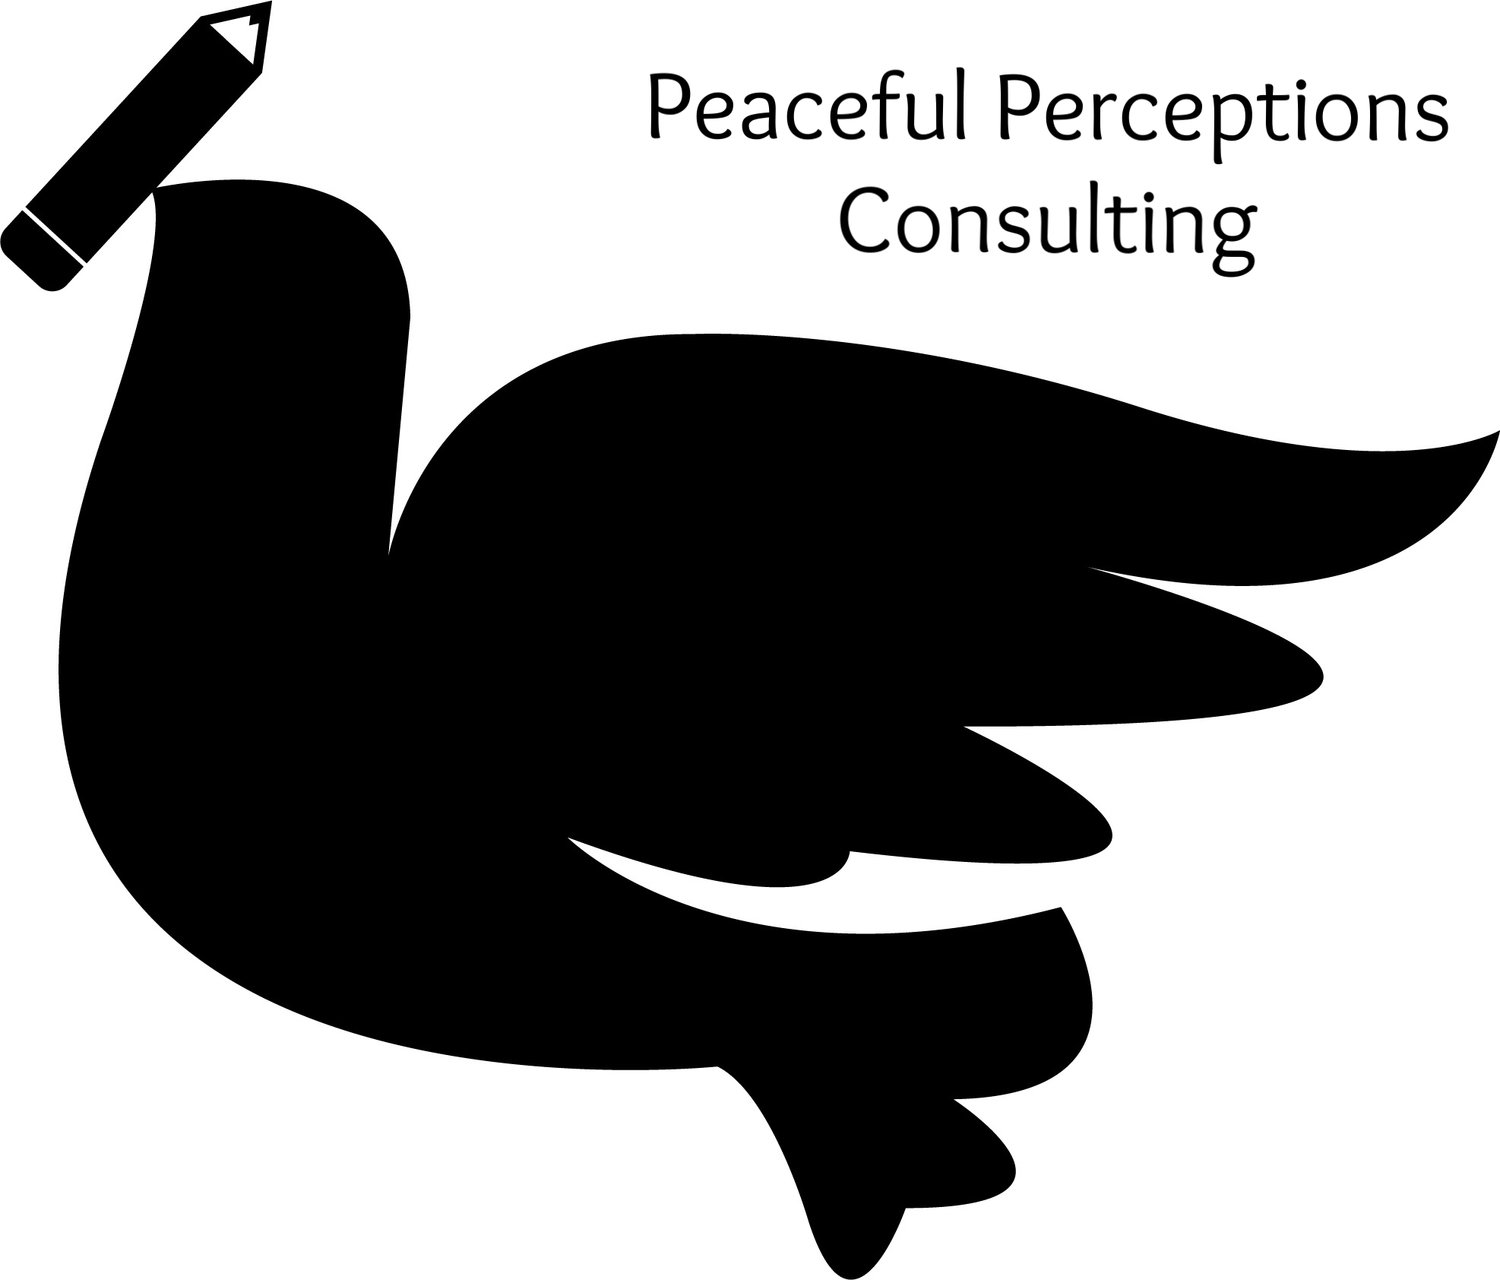 Peaceful Perceptions Consulting